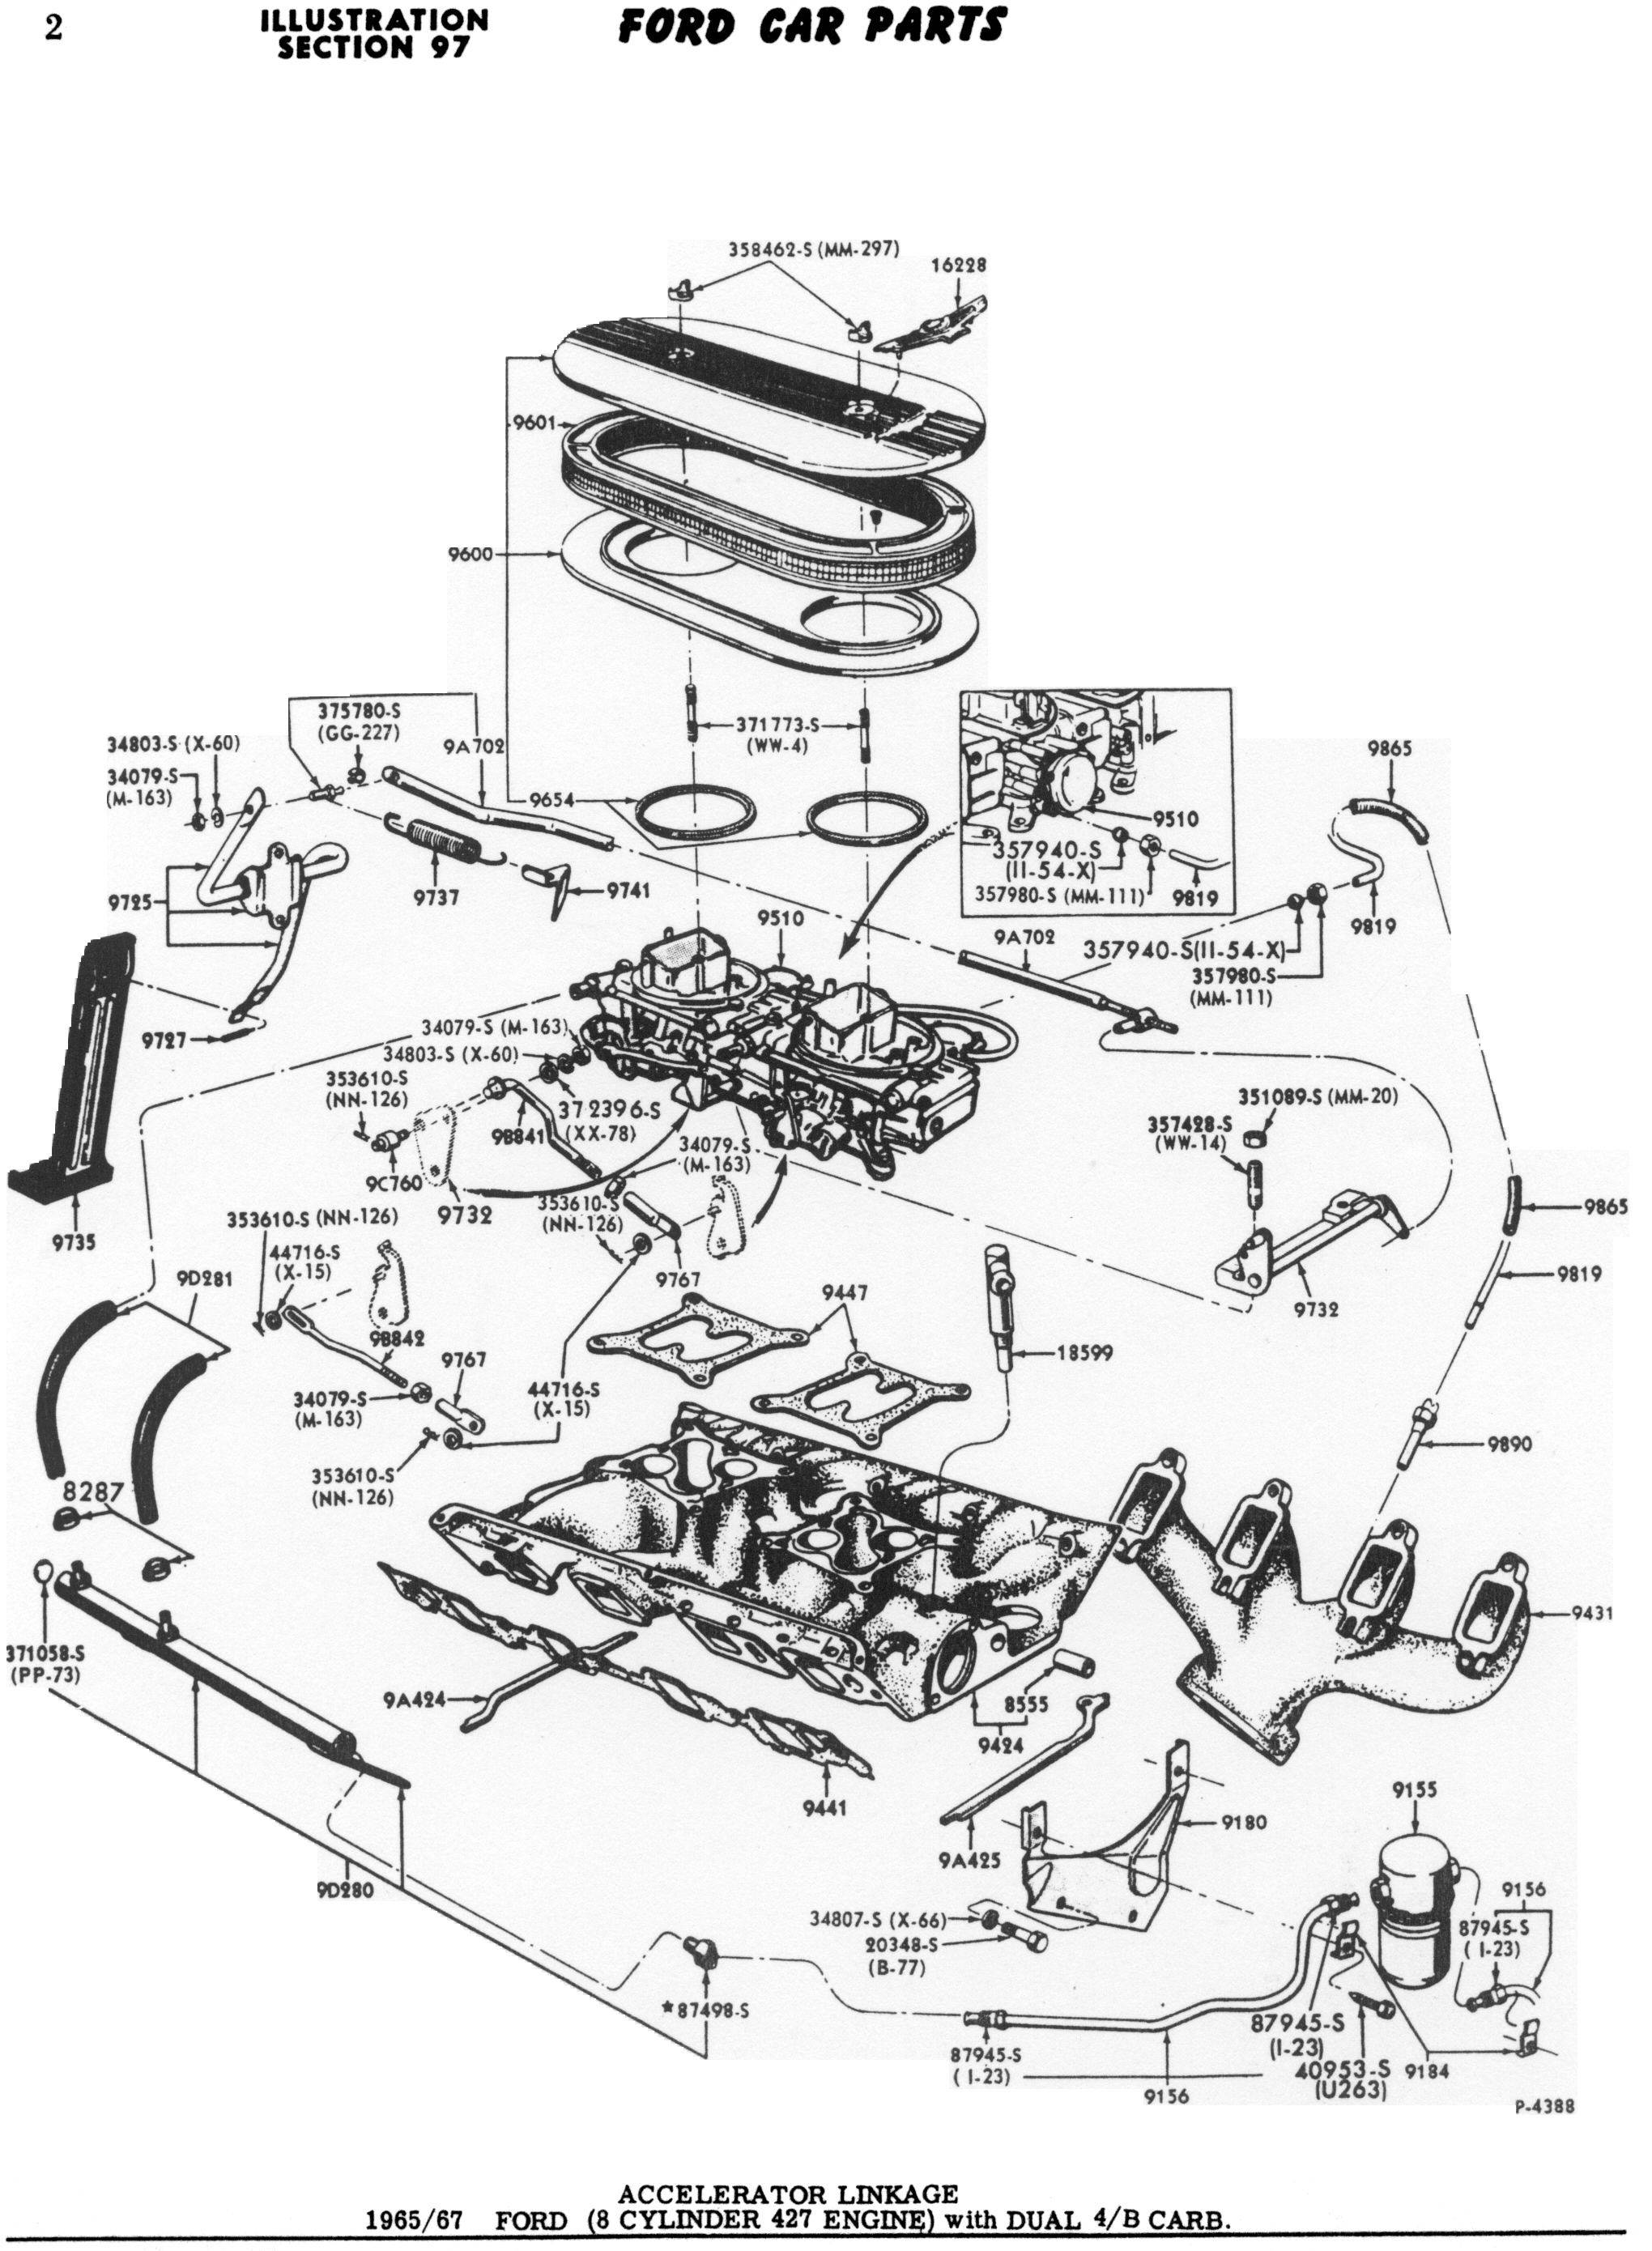 ford mustang 289 engine diagram - wiring diagram bike-dive-a -  bike-dive-a.cfcarsnoleggio.it  cfcarsnoleggio.it